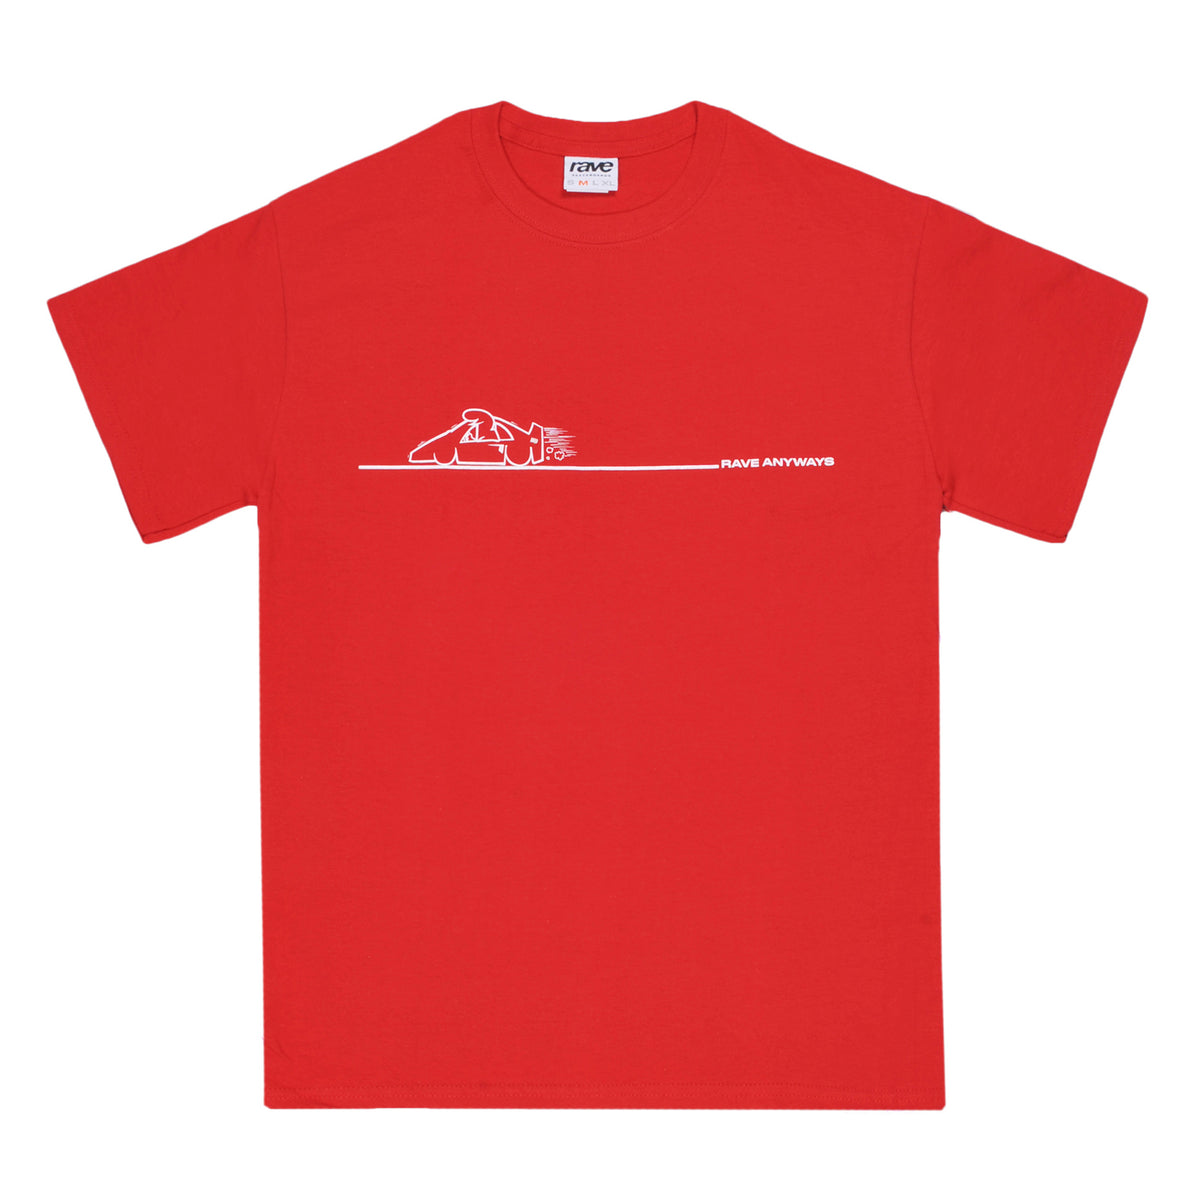 RAVE x ANYWAYS red tee - RAVE skateboards